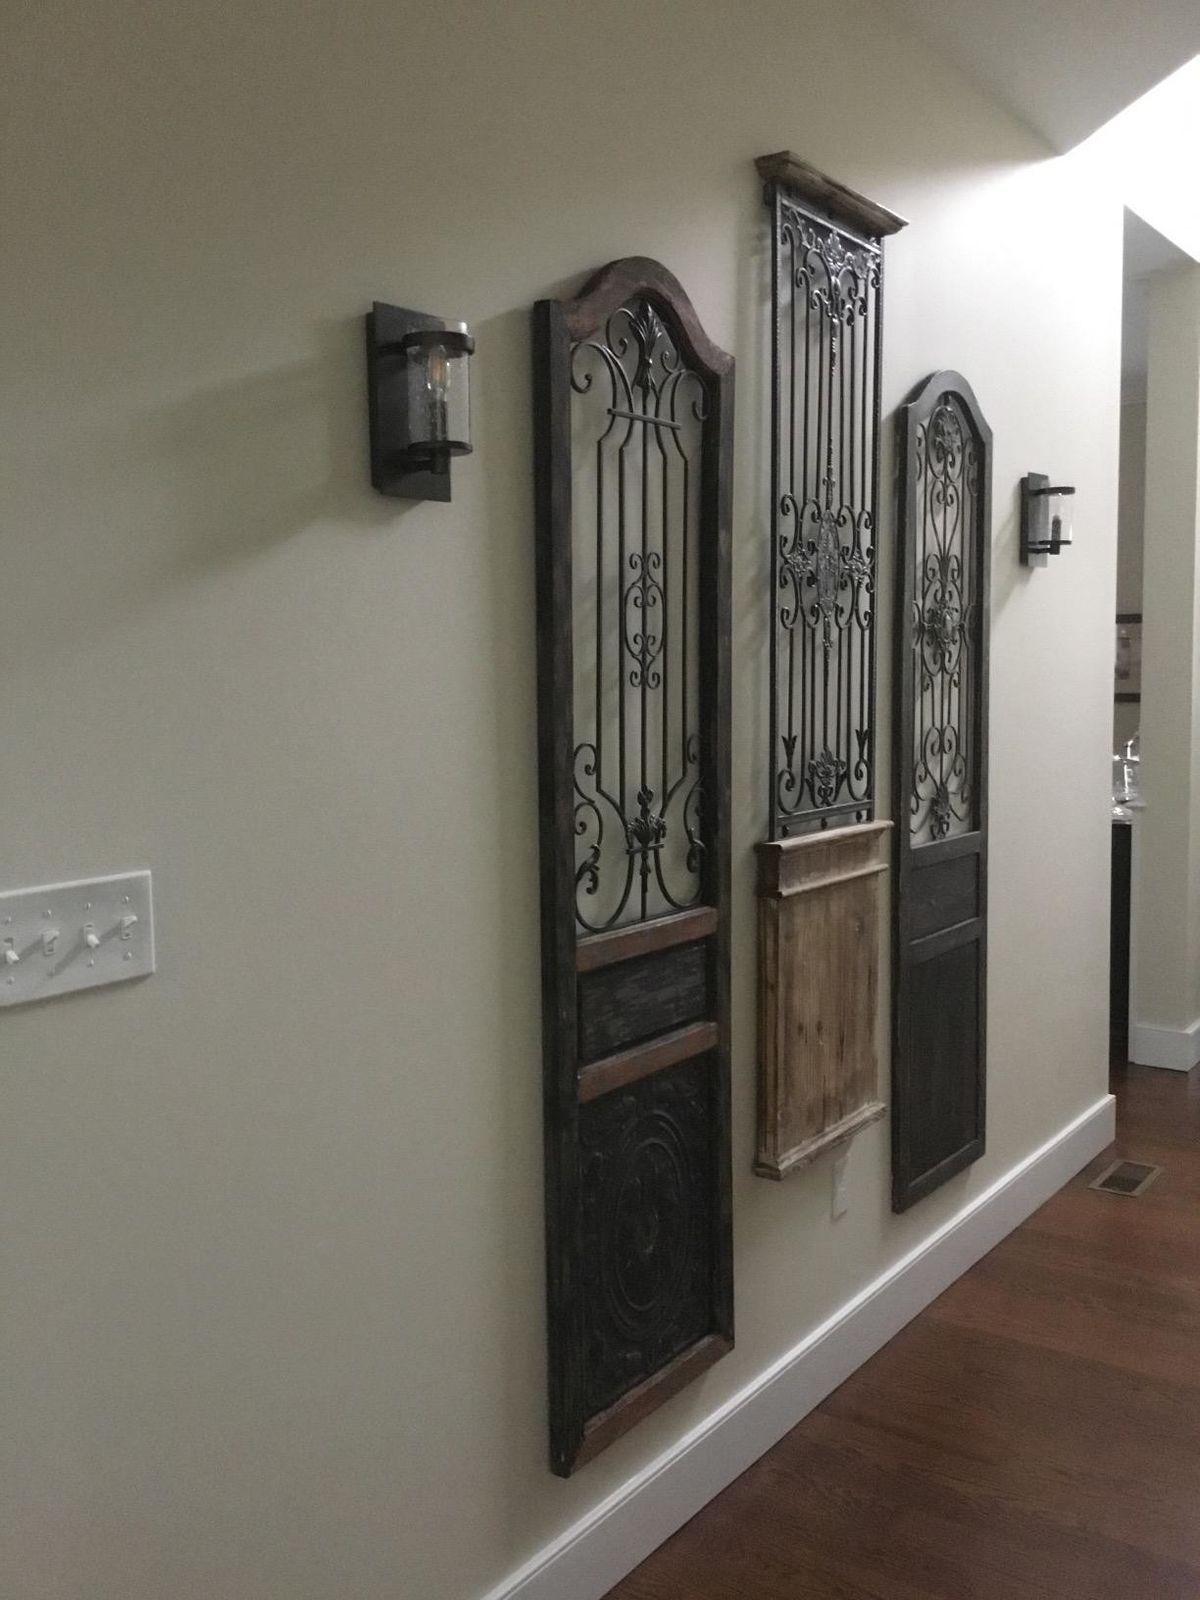 Iron Scroll Work Wood Wall Decor Garden Rustic Arched Sculpture